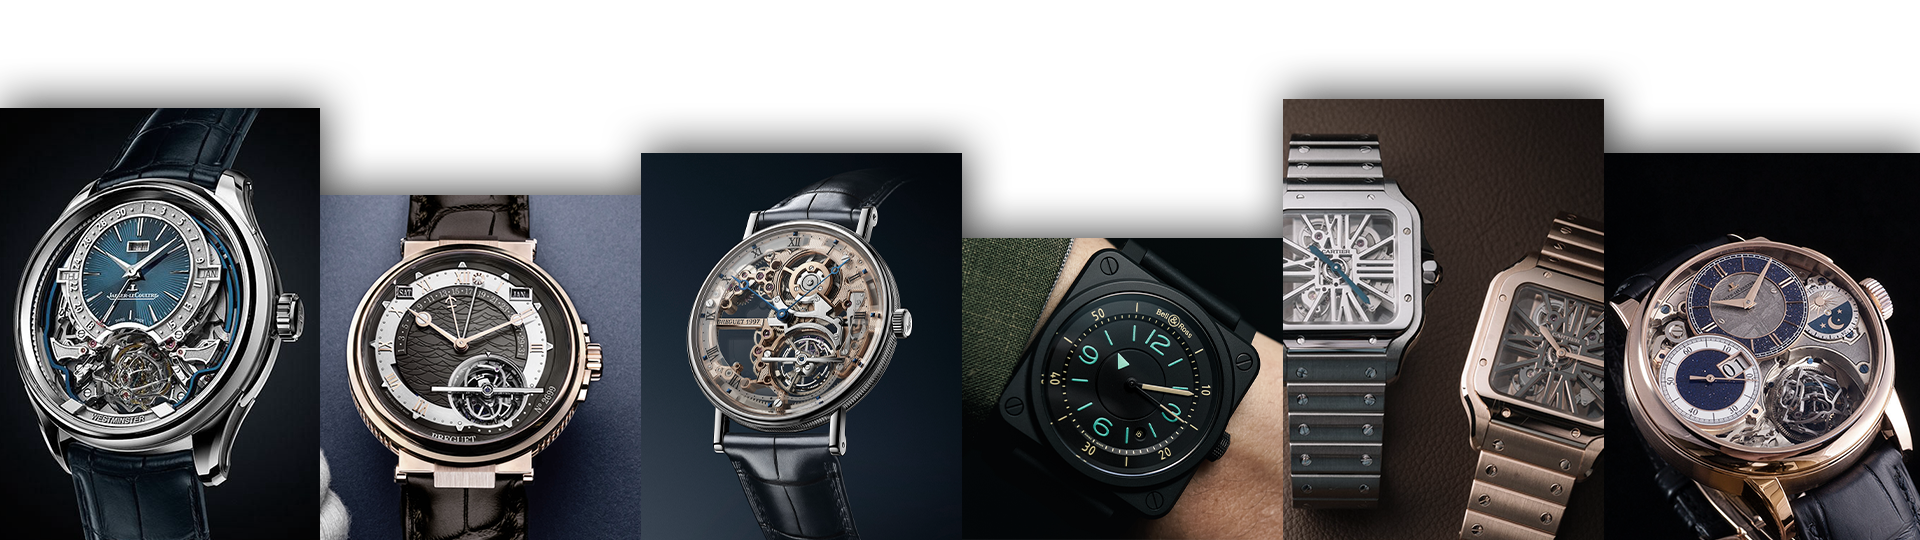 FAMOUS FRENCH WATCHMAKERS